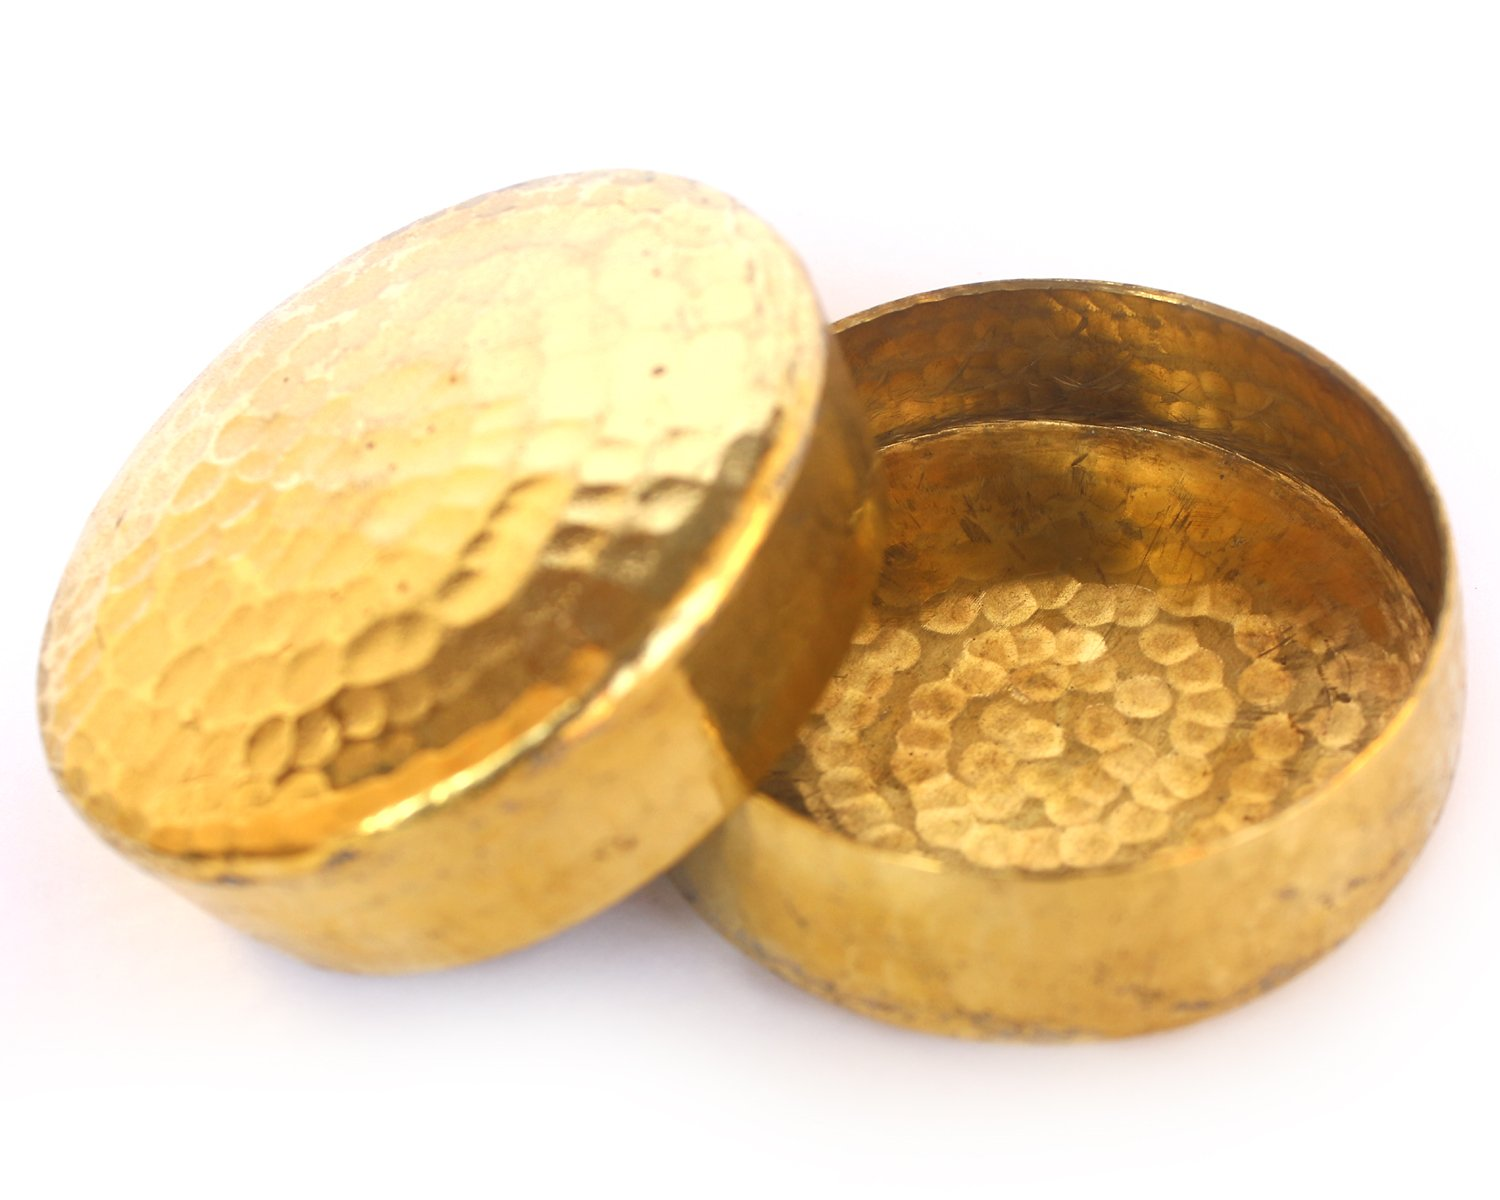 De Kulture™ Hand Made Pure Brass Candle Bowl Set Of 2-3.5X0.75 DH (Inches) For Home Decor Living Room Bedroom Ideal For Valentine's Day Easter Diwali Gift For Girl Woman (Gold) De Kulture Works